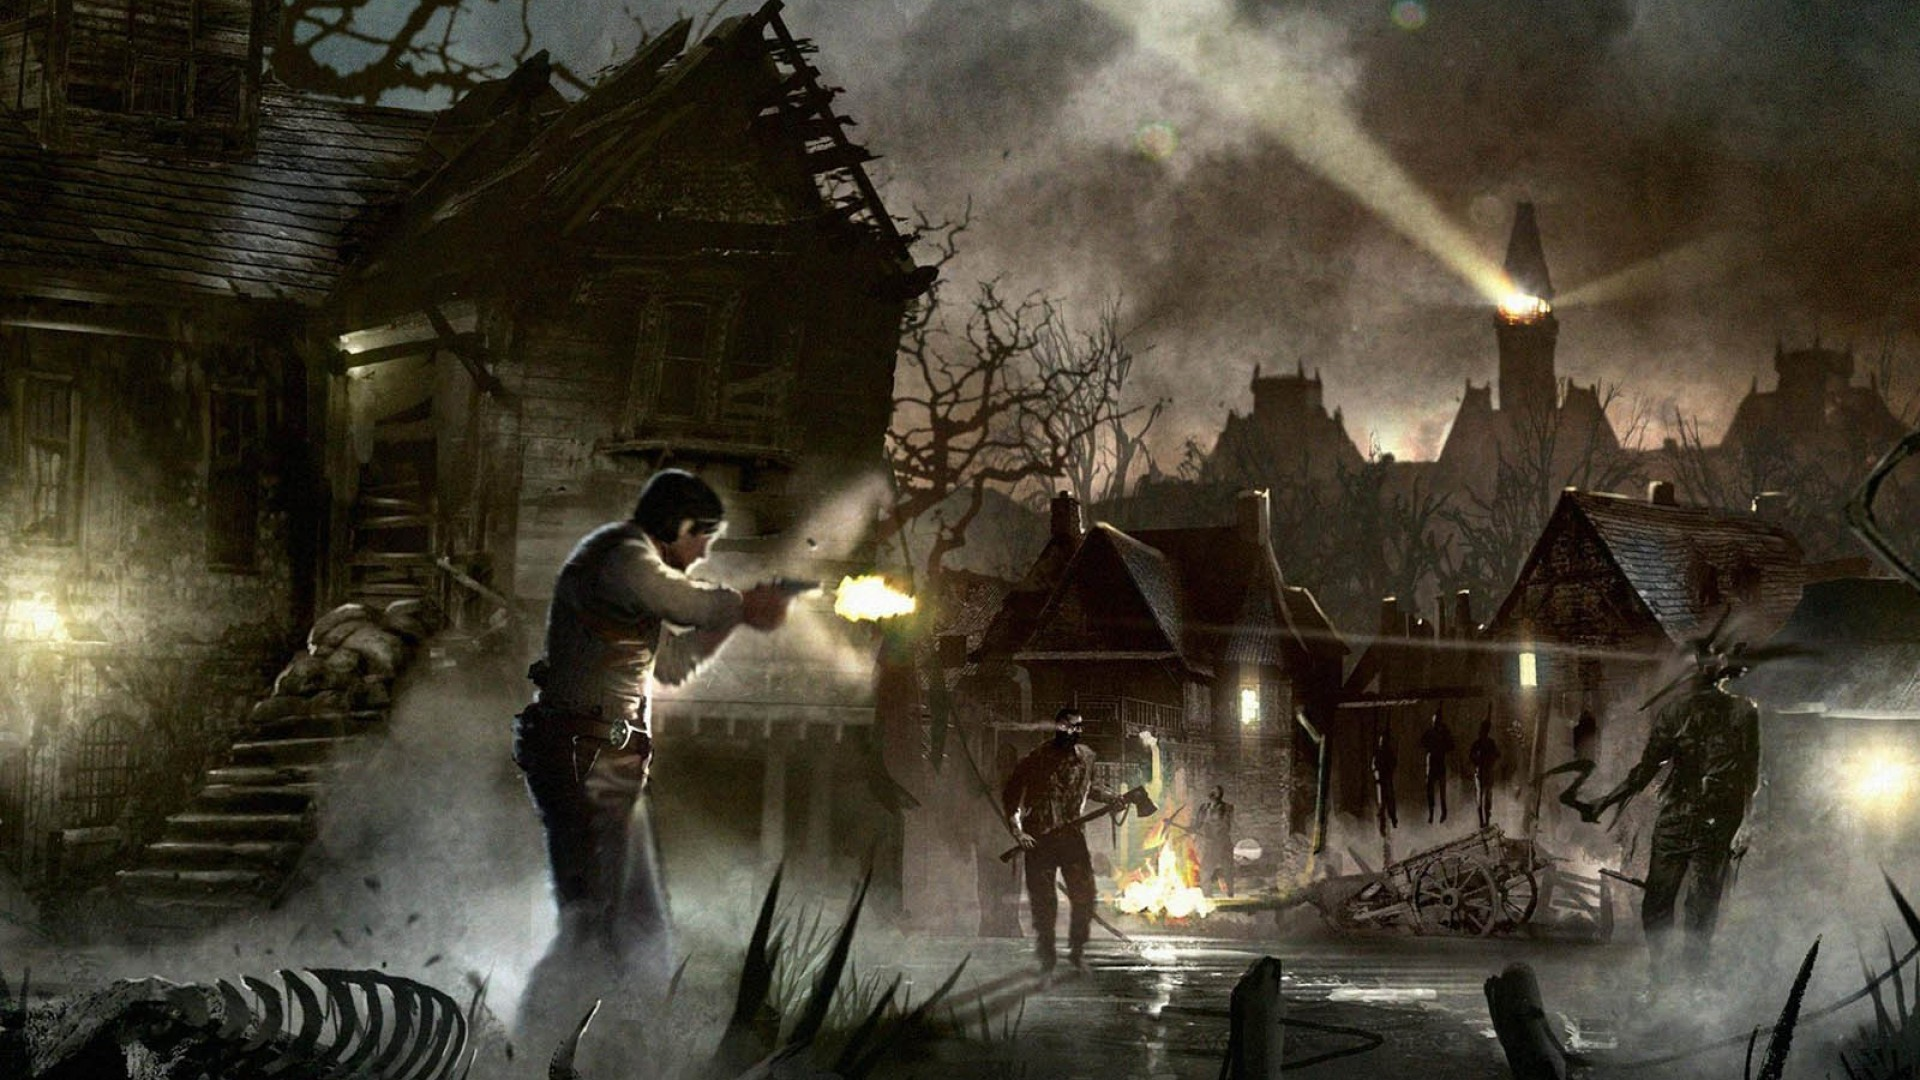 The Evil Within Wallpapers: The Evil Within Computer Wallpapers, Desktop Backgrounds